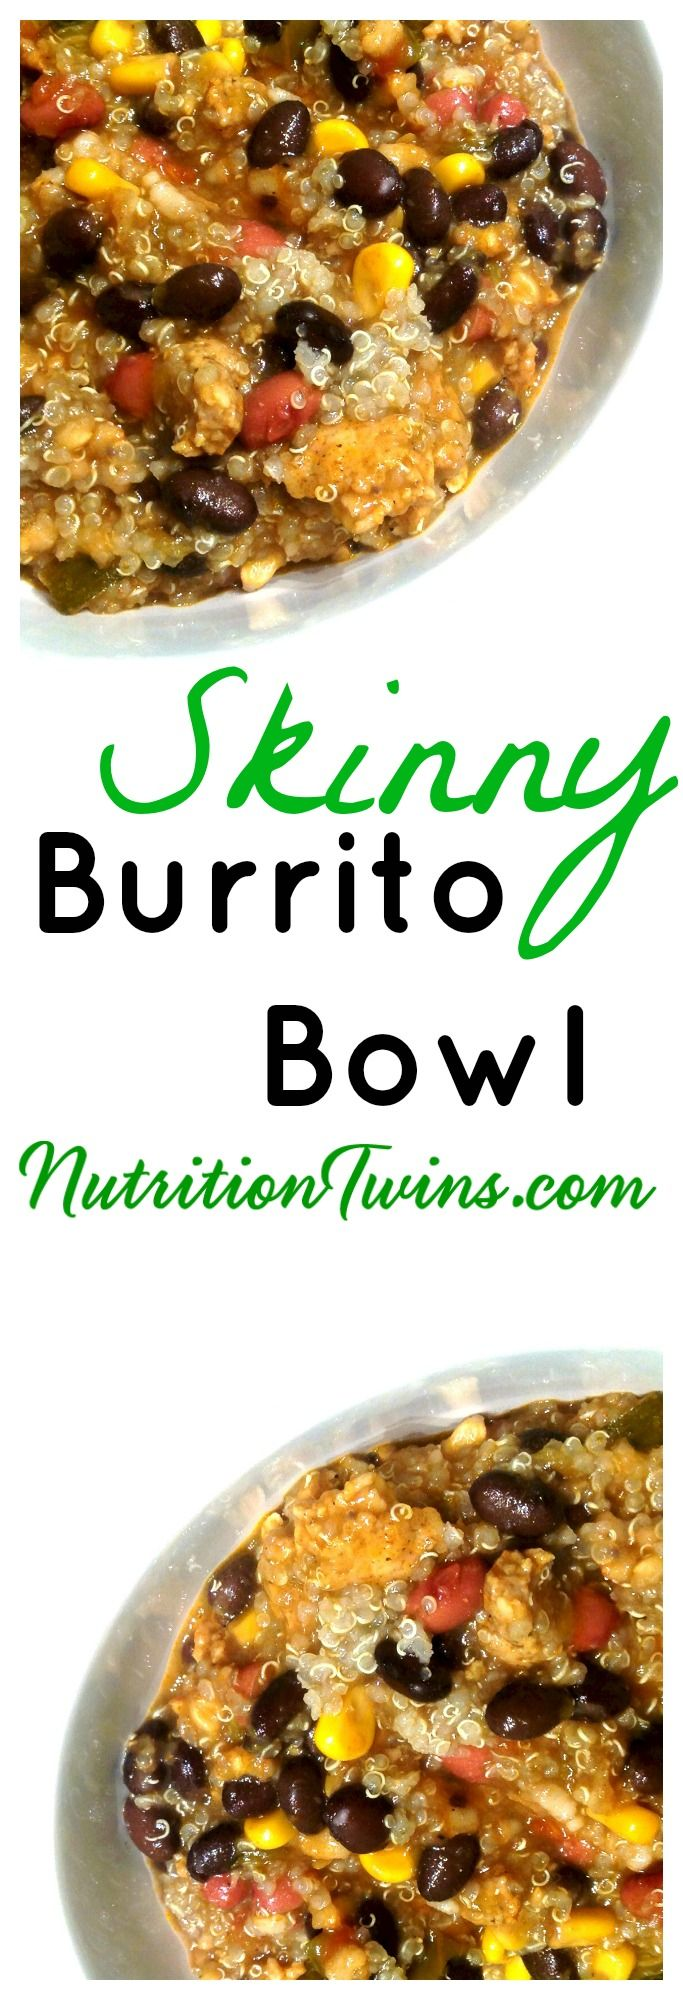 Skinny Burrito Bowl | Satisfying, Delicious | Guilt-free Comfort Food | Only 180 Calories | Made with Quinoa, Brown Rice, Beans | For RECIPES, fitness & nutrition tips please SIGN UP for our FREE NEWSLETTER www.NutritionTwins.com